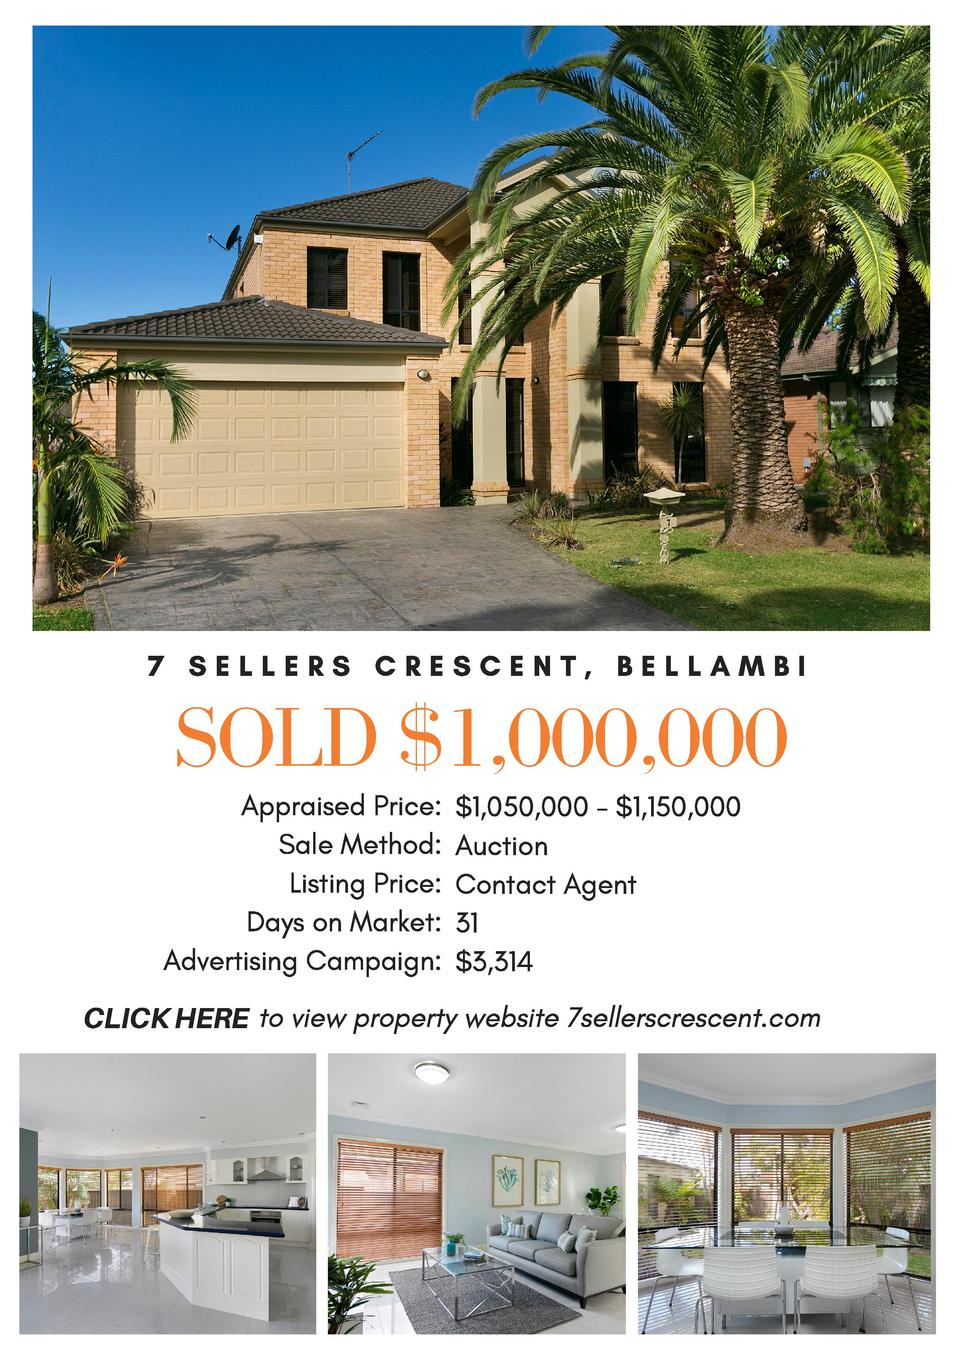 7 SELLERS CRESCENT, BELLAMBI  SOLD  1,000,000 Appraised Price   1,050,000 -  1,150,000 Sale Method  Auction    Listing Pri...